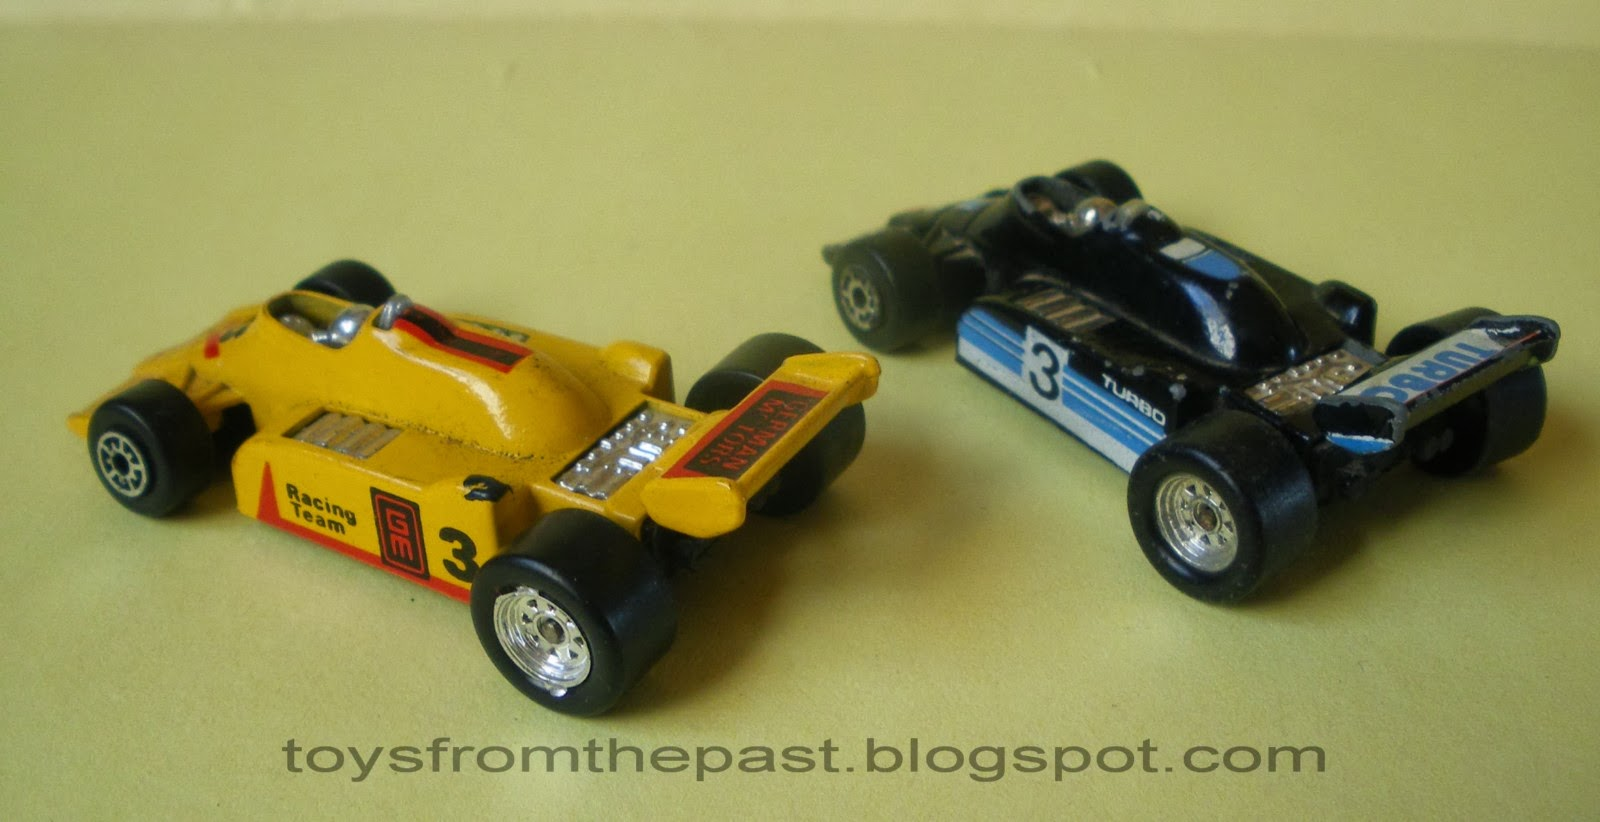 Toy Indy Cars Racing In Streets